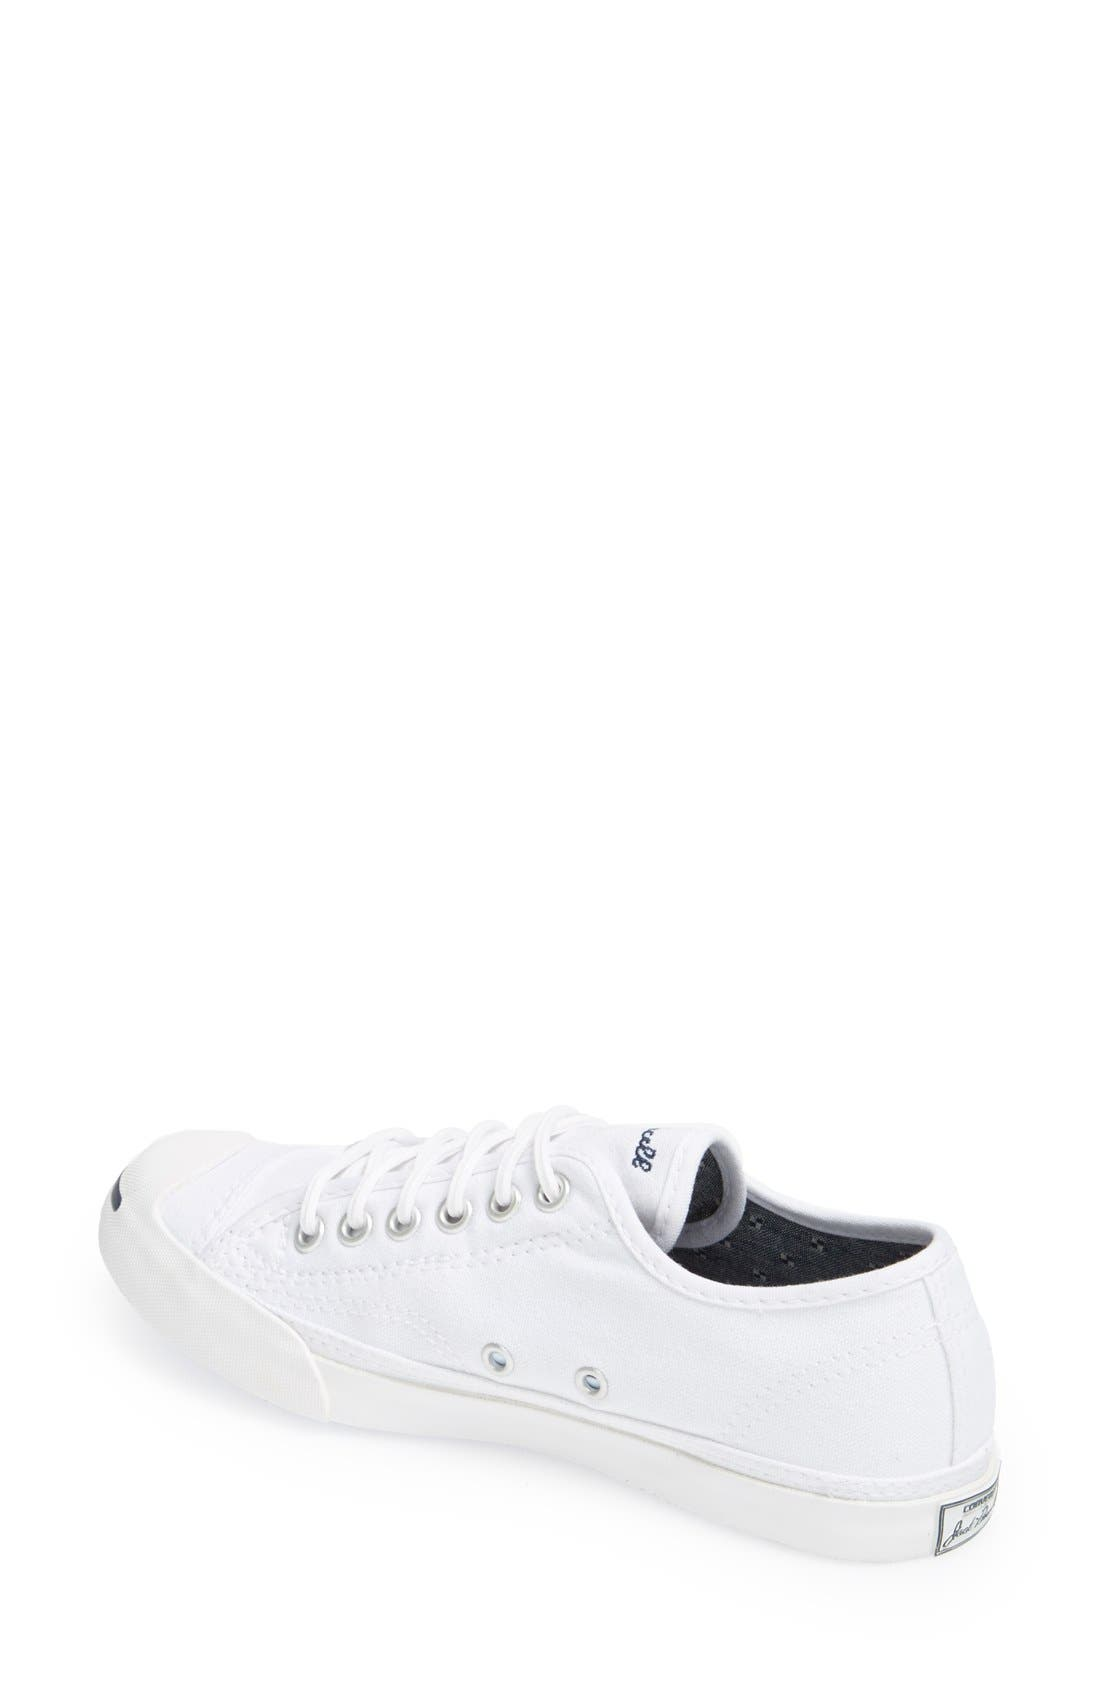 Jack Purcell Low Top Sneaker,                             Alternate thumbnail 6, color,                             OPTIC WHITE